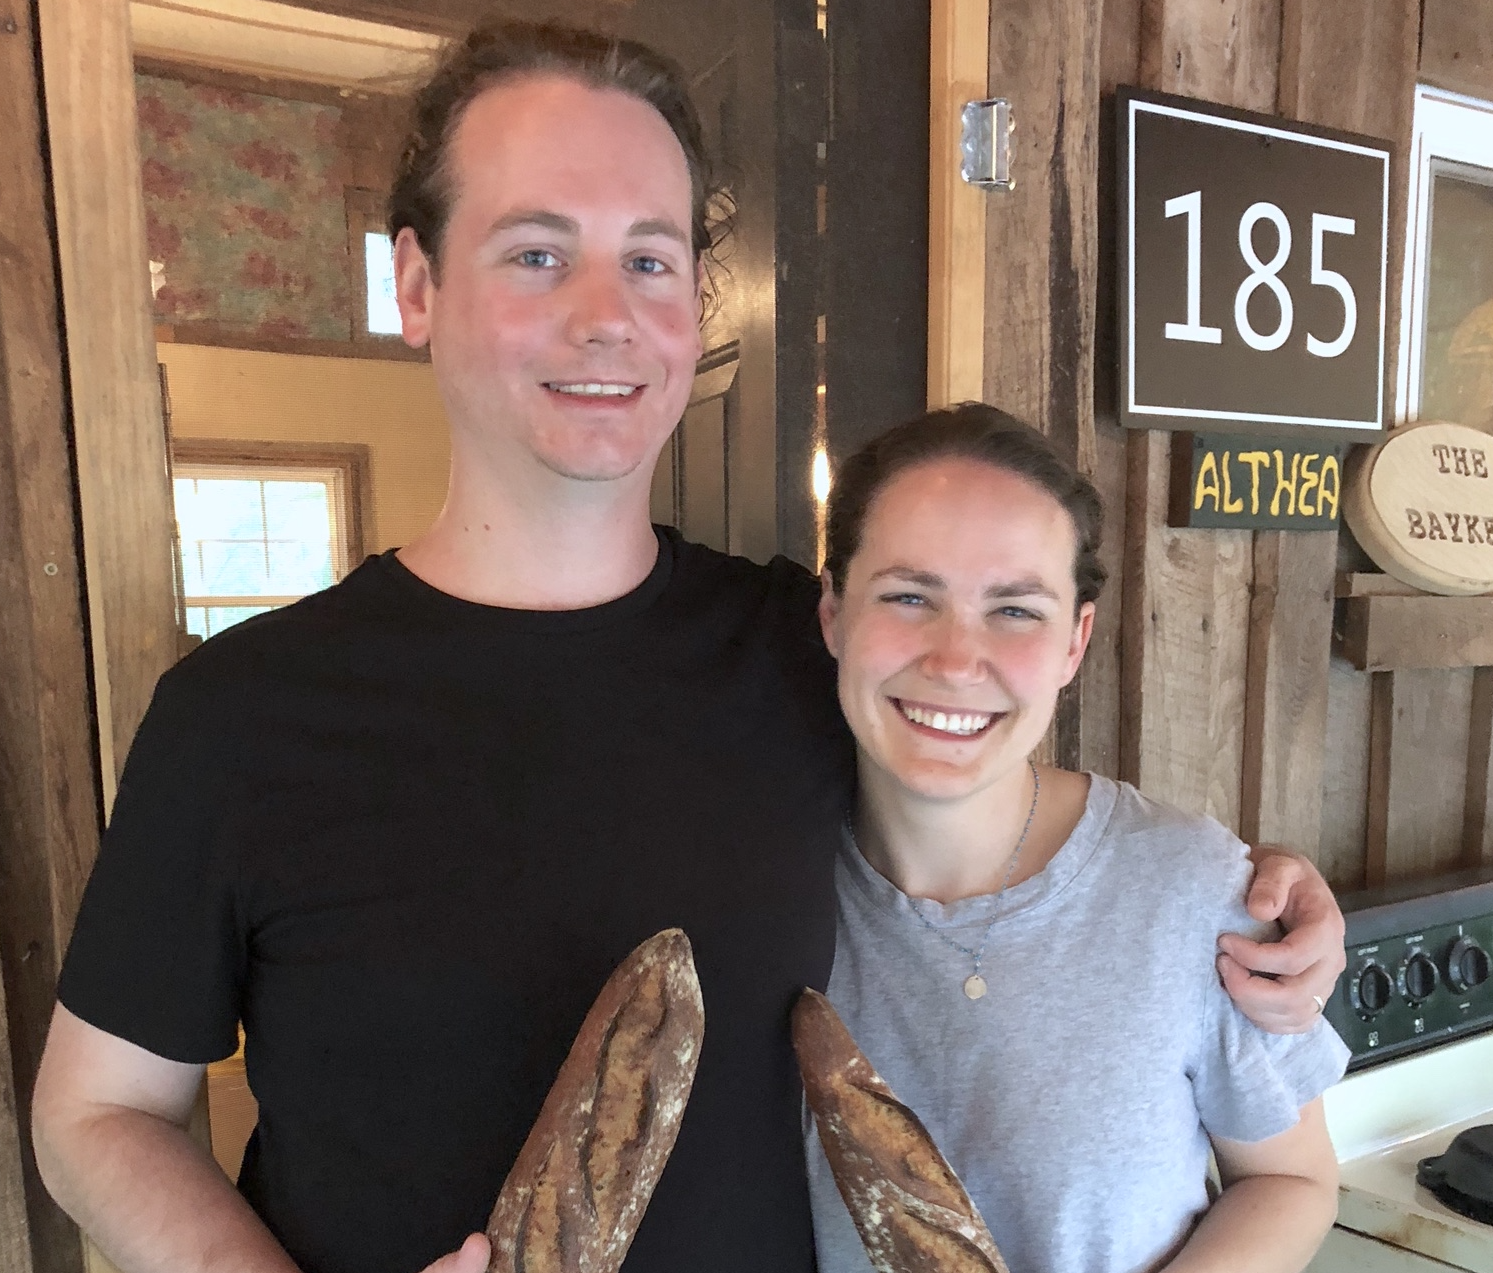 althea bread - Althea Bread is a Charlottesville-based business owned by Andrew and Susan Bayker. They started it in 2018 and went through the 16-week entrepreneur workshop at the Community Investment Collaborative (CIC) in Charlottesville in early 2019. Althea Bread is named after the Greek word for wholesome and healing. To that end they use whole grains and grind much of the flour they use with a stone mill. They have also shown a commitment to local grain farmers by sourcing when they can from local organic grain growers around the region. The business received a 0% SOIL loan in August 2019 to purchase two new stone mills to help them boost production and sales. Read more about Althea Bread and their SOIL loan.